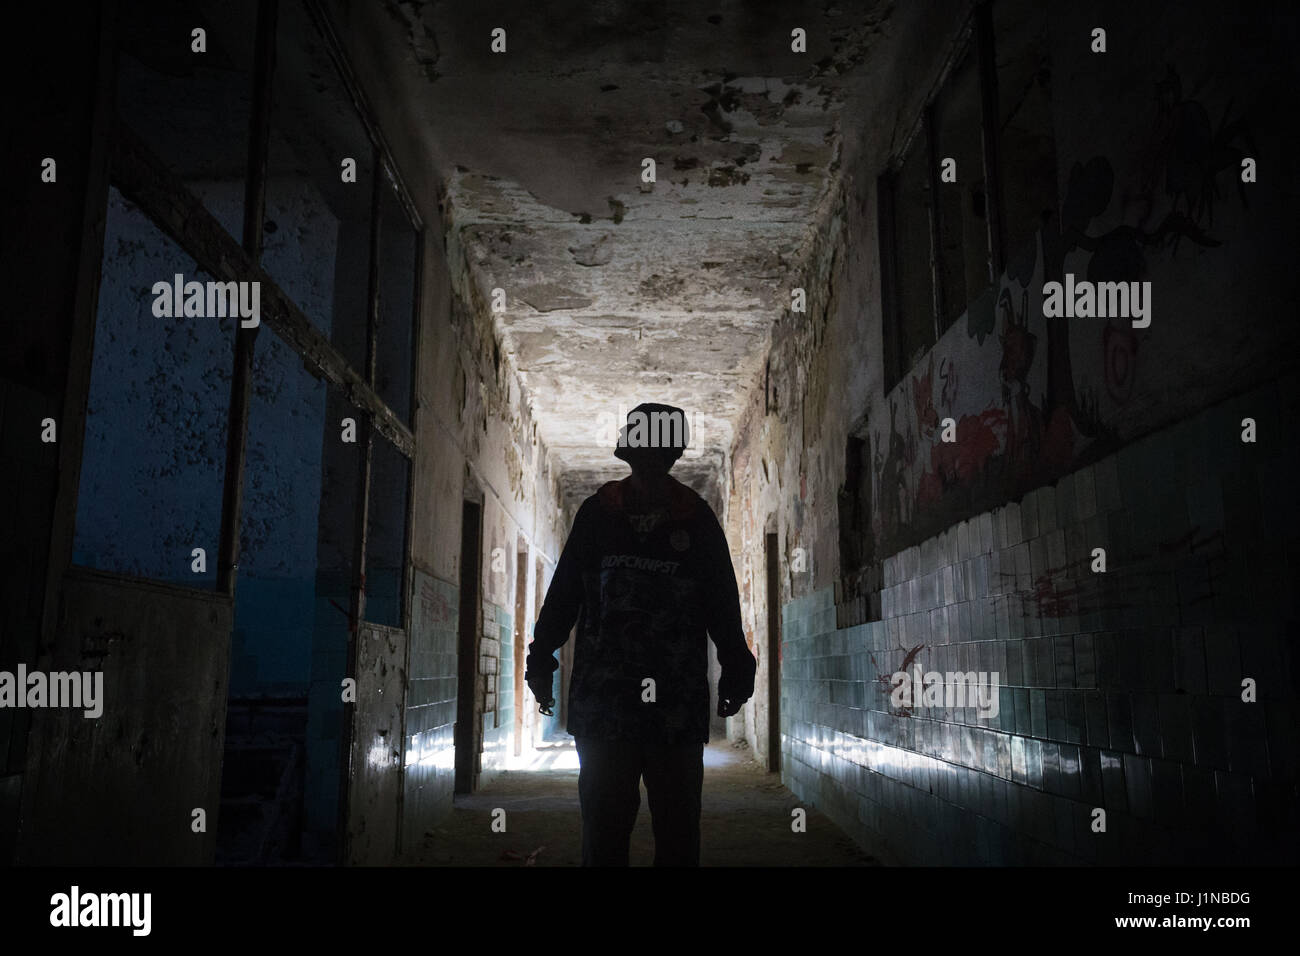 Man in a dark abandoned hospital building - Stock Image